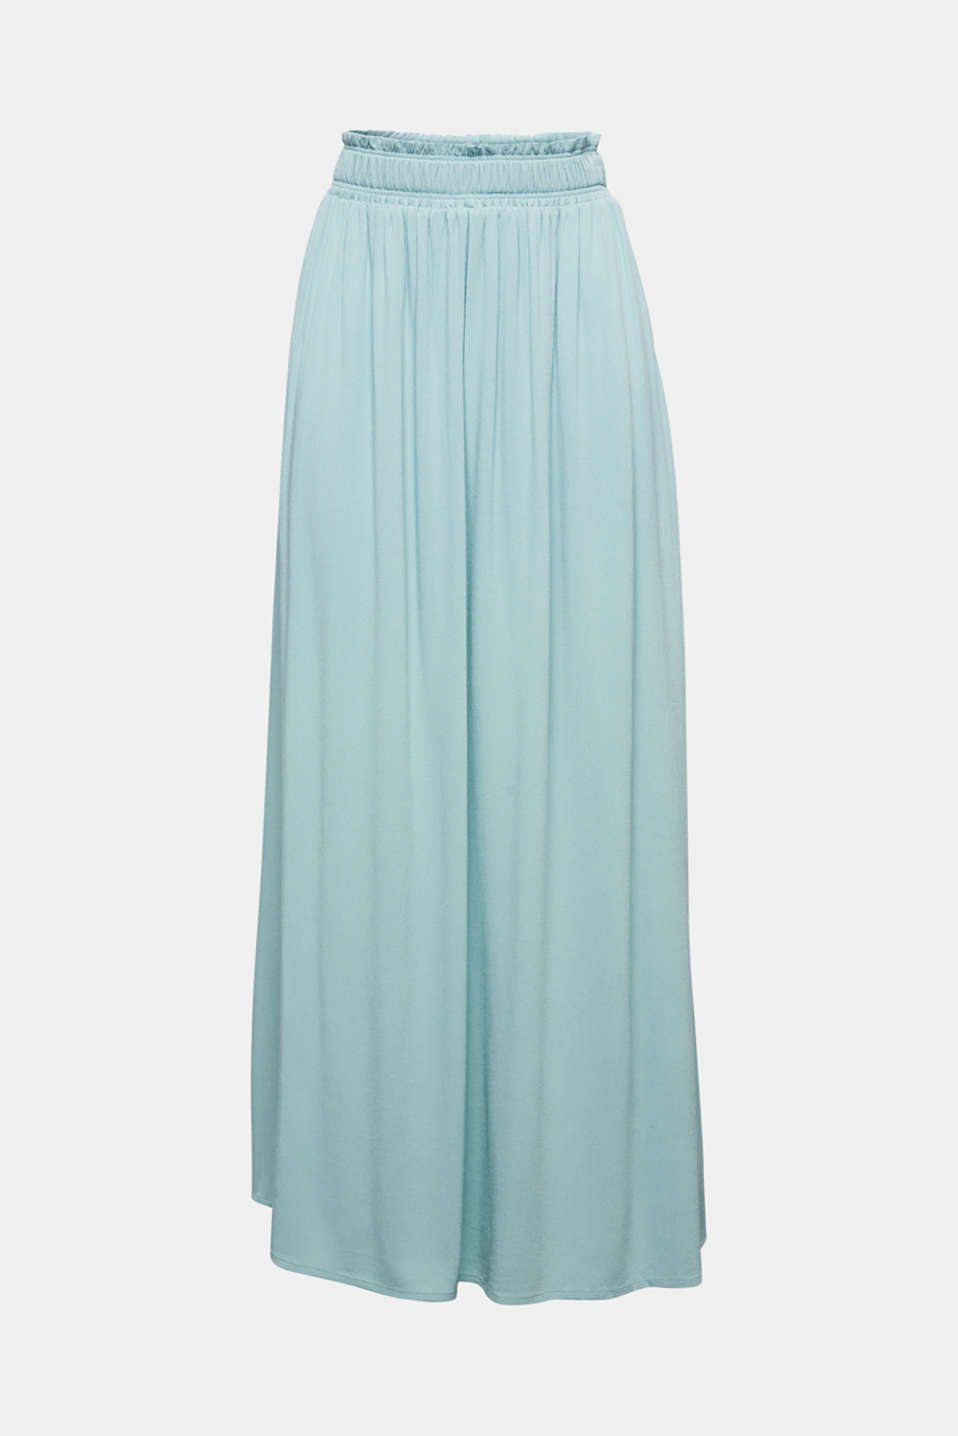 Maxi skirt in flowing crêpe, LIGHT AQUA GREEN, detail image number 5